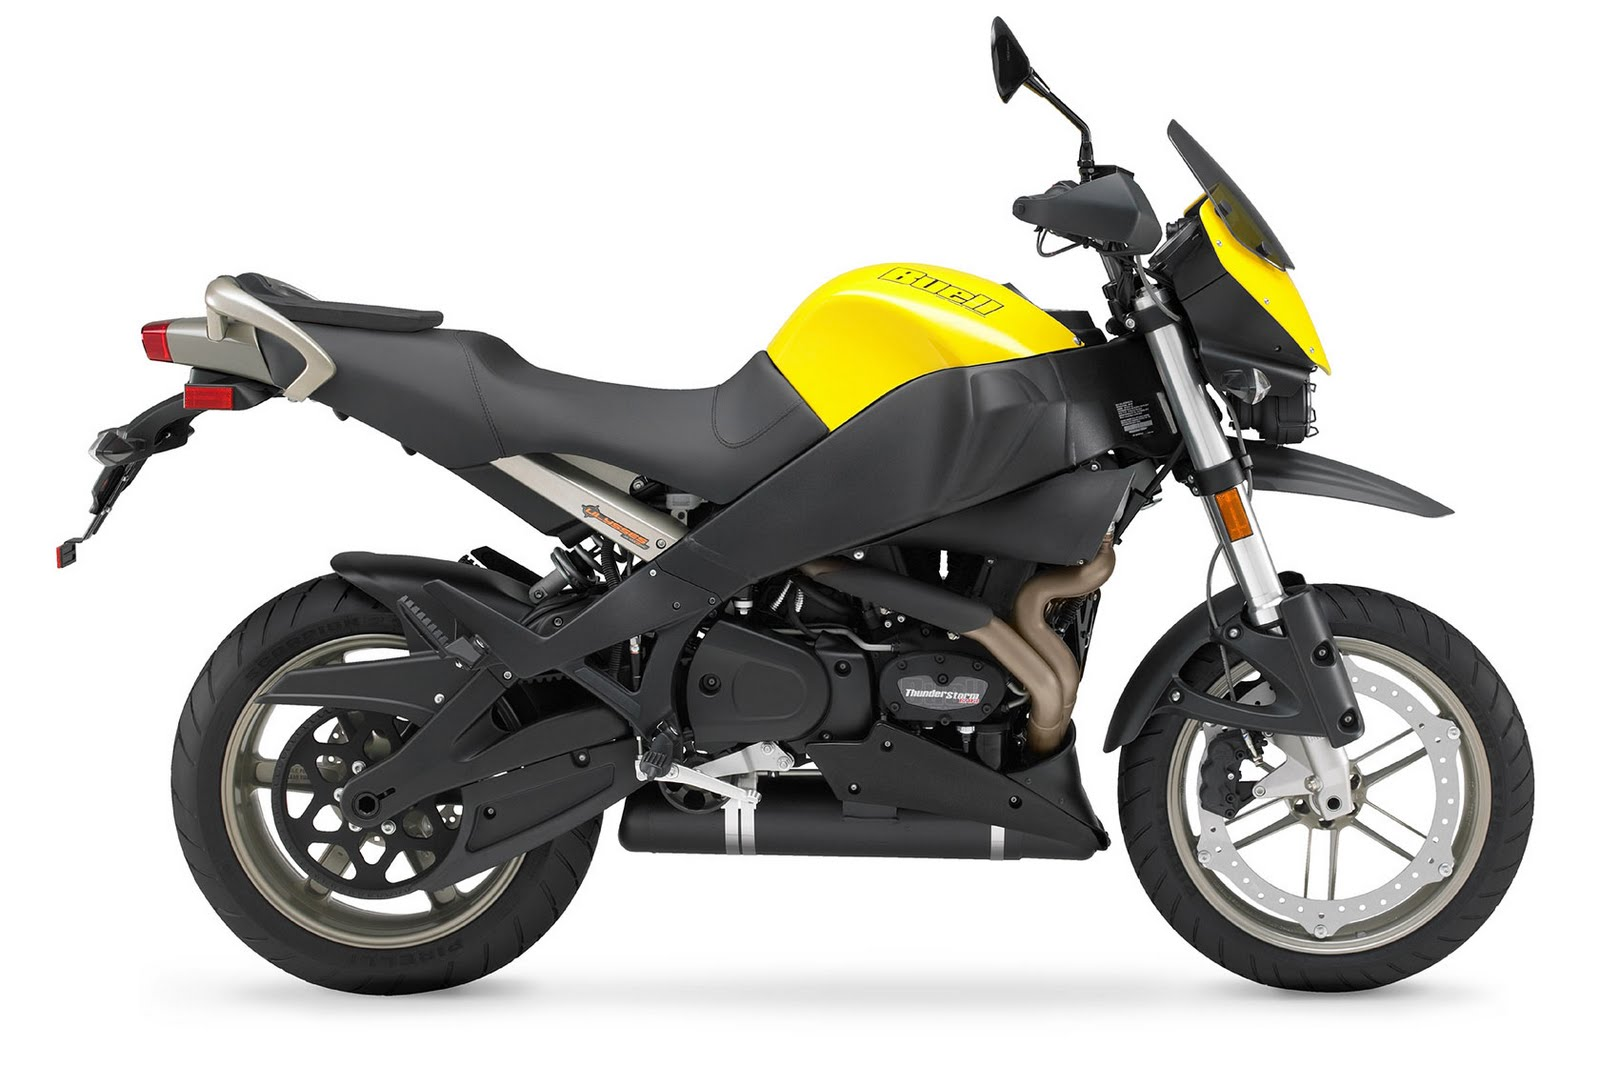 Motorcycle Pictures Buell Ulysses Xb12x 2010